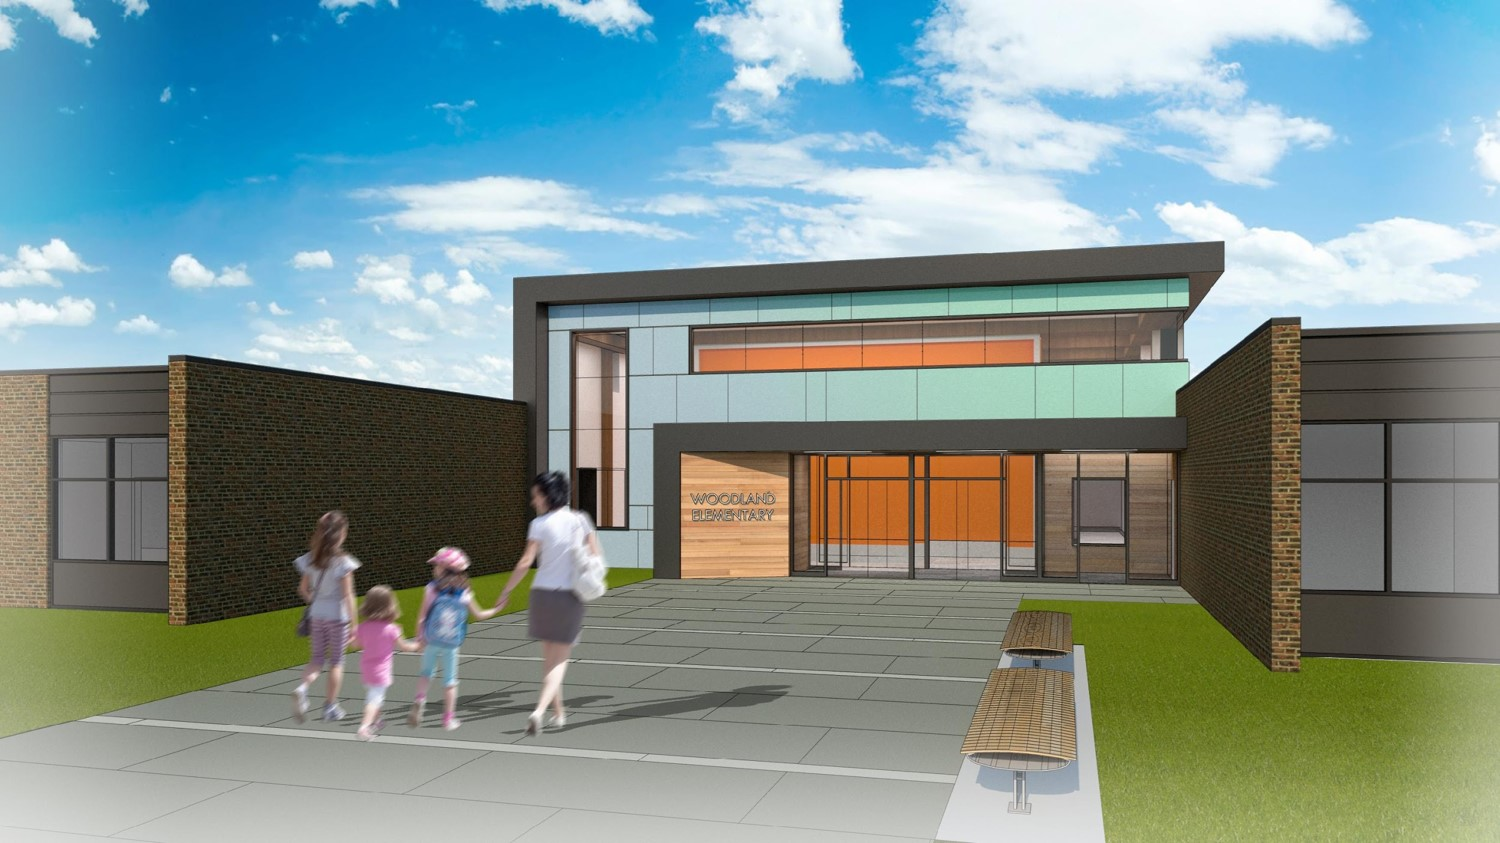 Woodland: Proposed Entrance Rendering